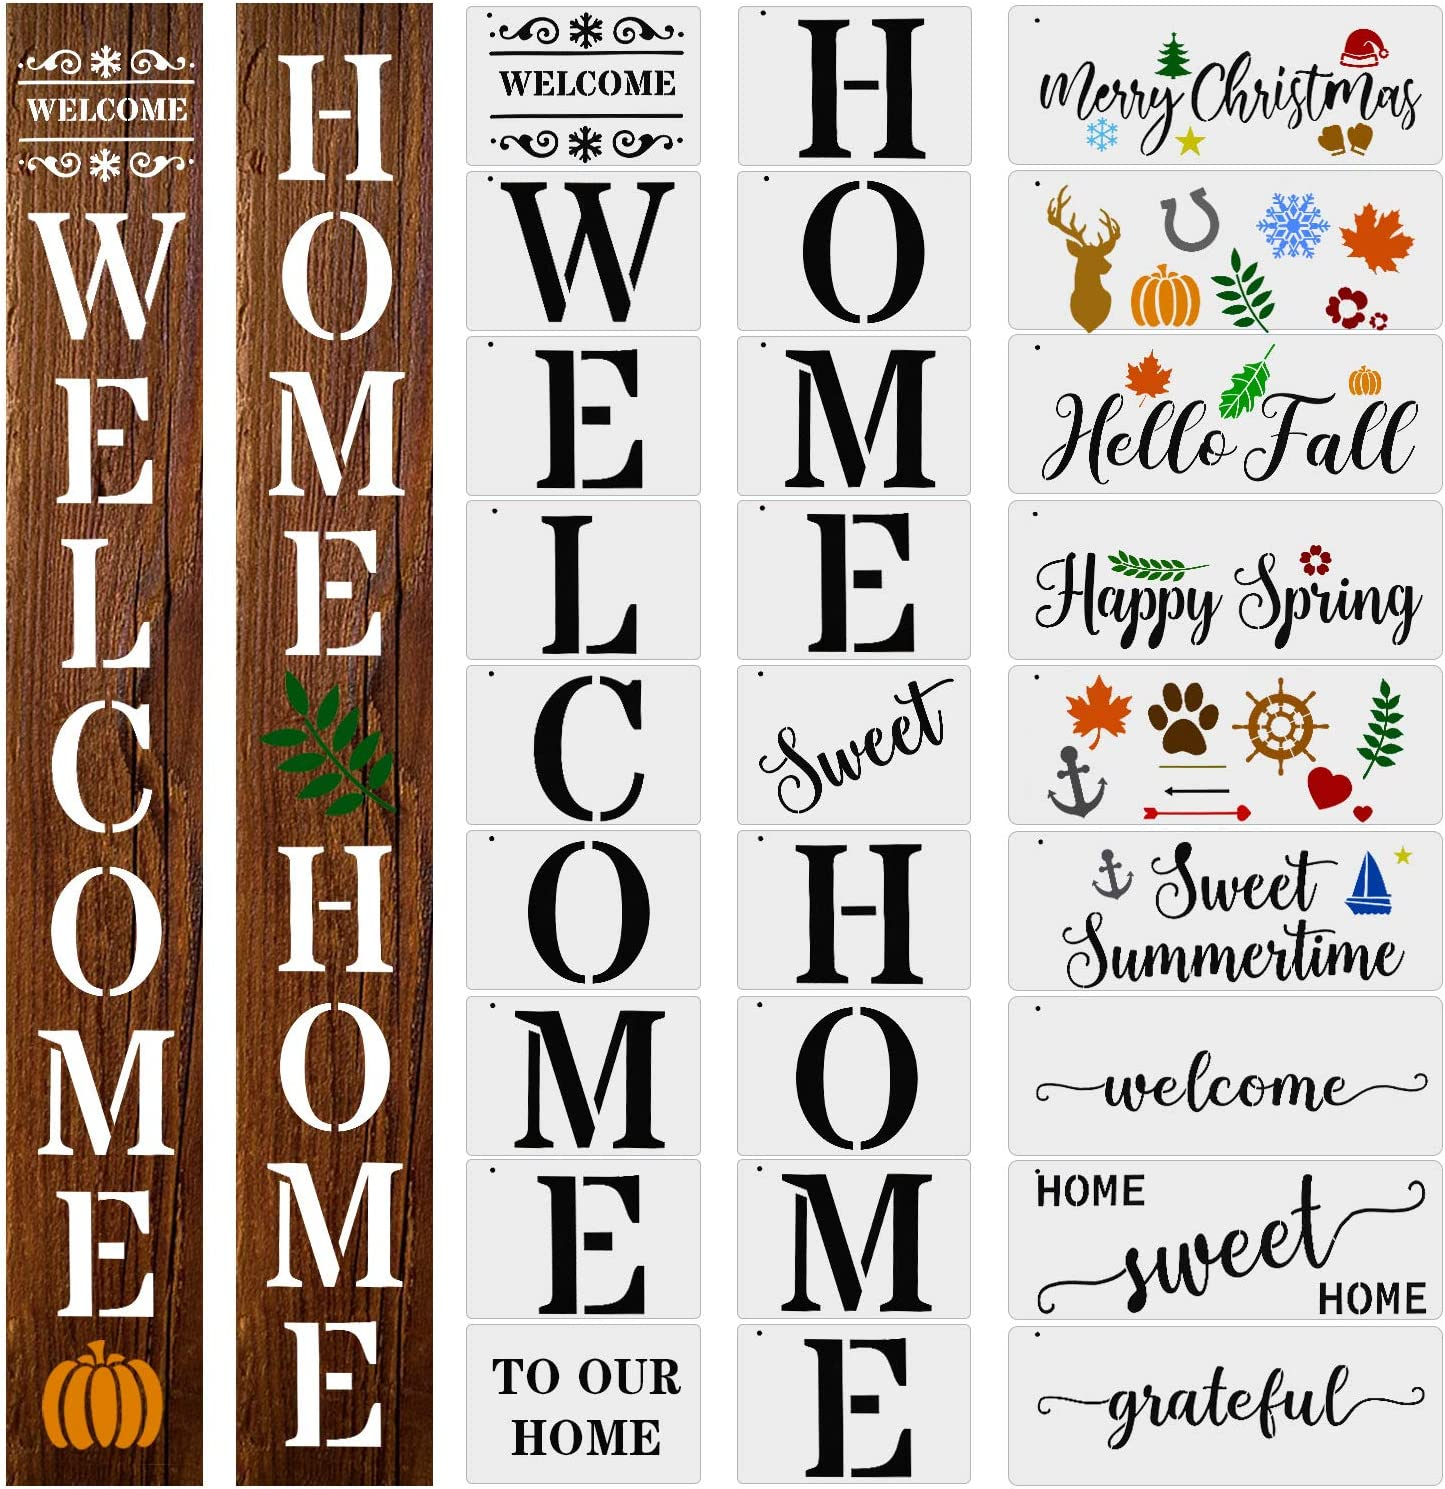 27 Pieces Welcome Stencils for Painting Home Stencil Word Stencils Sweet Home Sign Stencils DIY Stencil for Painting on Wood DIY Crafting